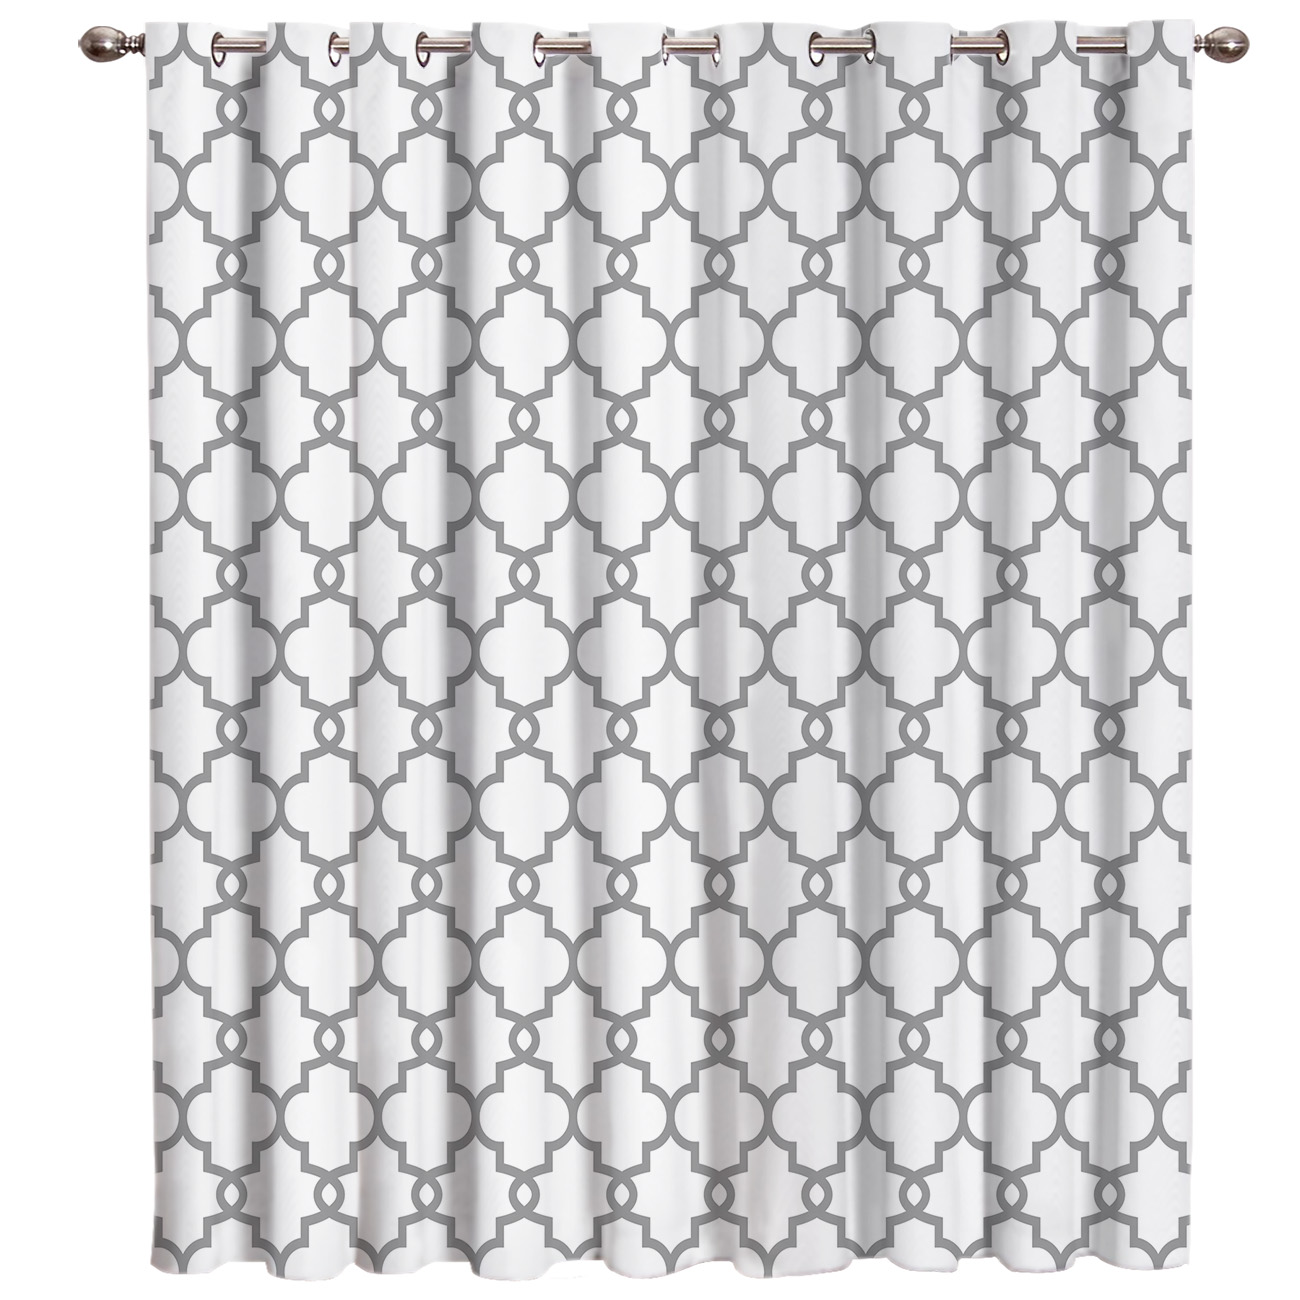 Moroccan White And Black Pattern Room Curtains Large Window Decor Bathroom Outdoor Kitchen Indoor Decor Kids Curtain Panels